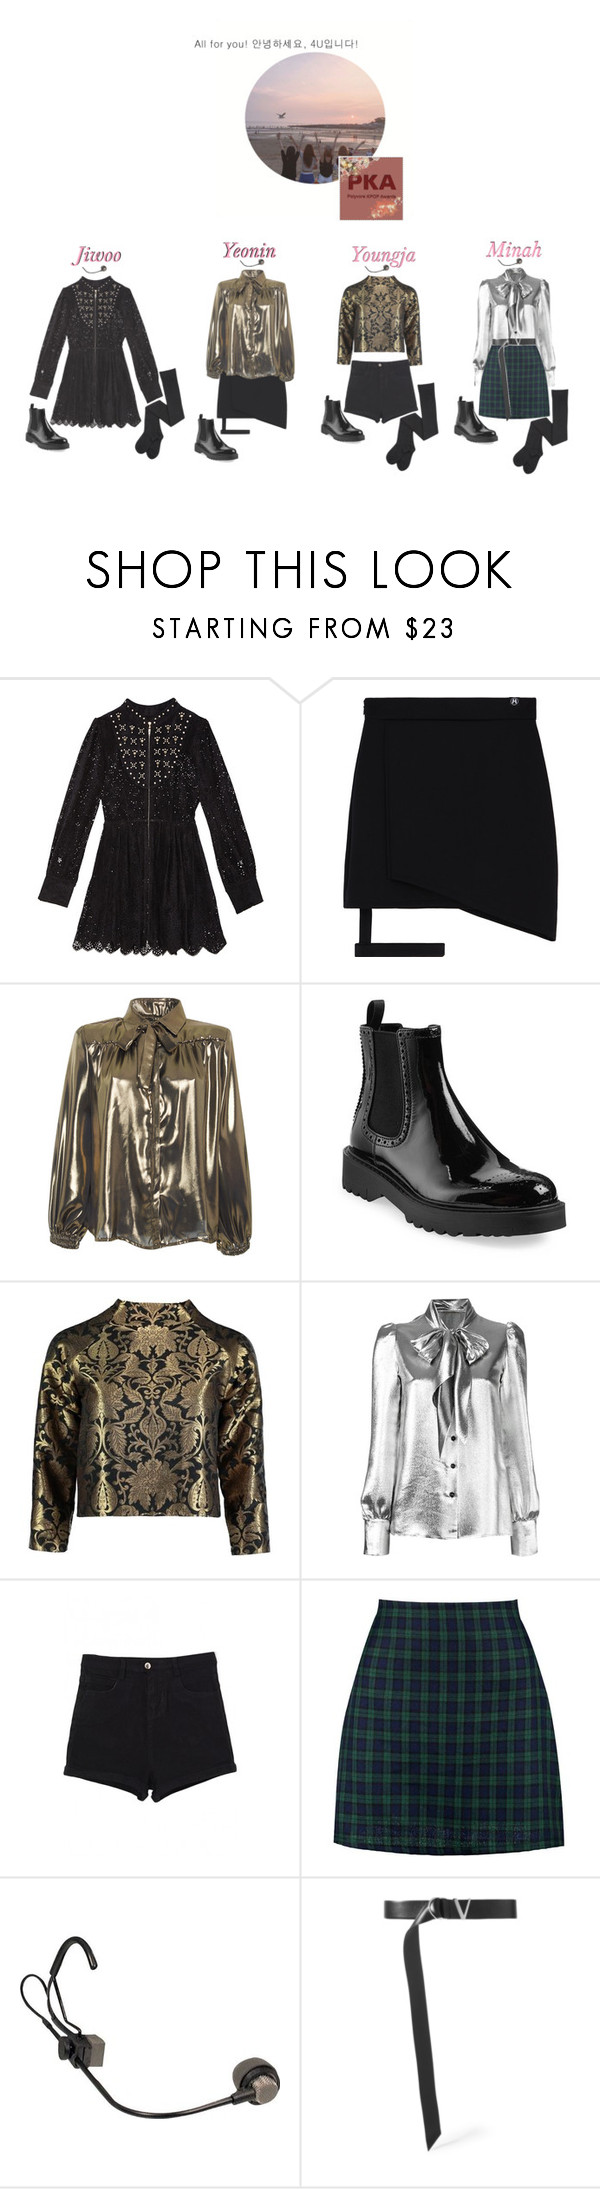 """""""Performing At Polyvore K-Pop Awards 2017: 4U"""" by real4u ❤ liked on Polyvore featuring Alcoolique, Prada, Sania Studio, Yves Saint Laurent, WithChic, Boohoo and Versace"""